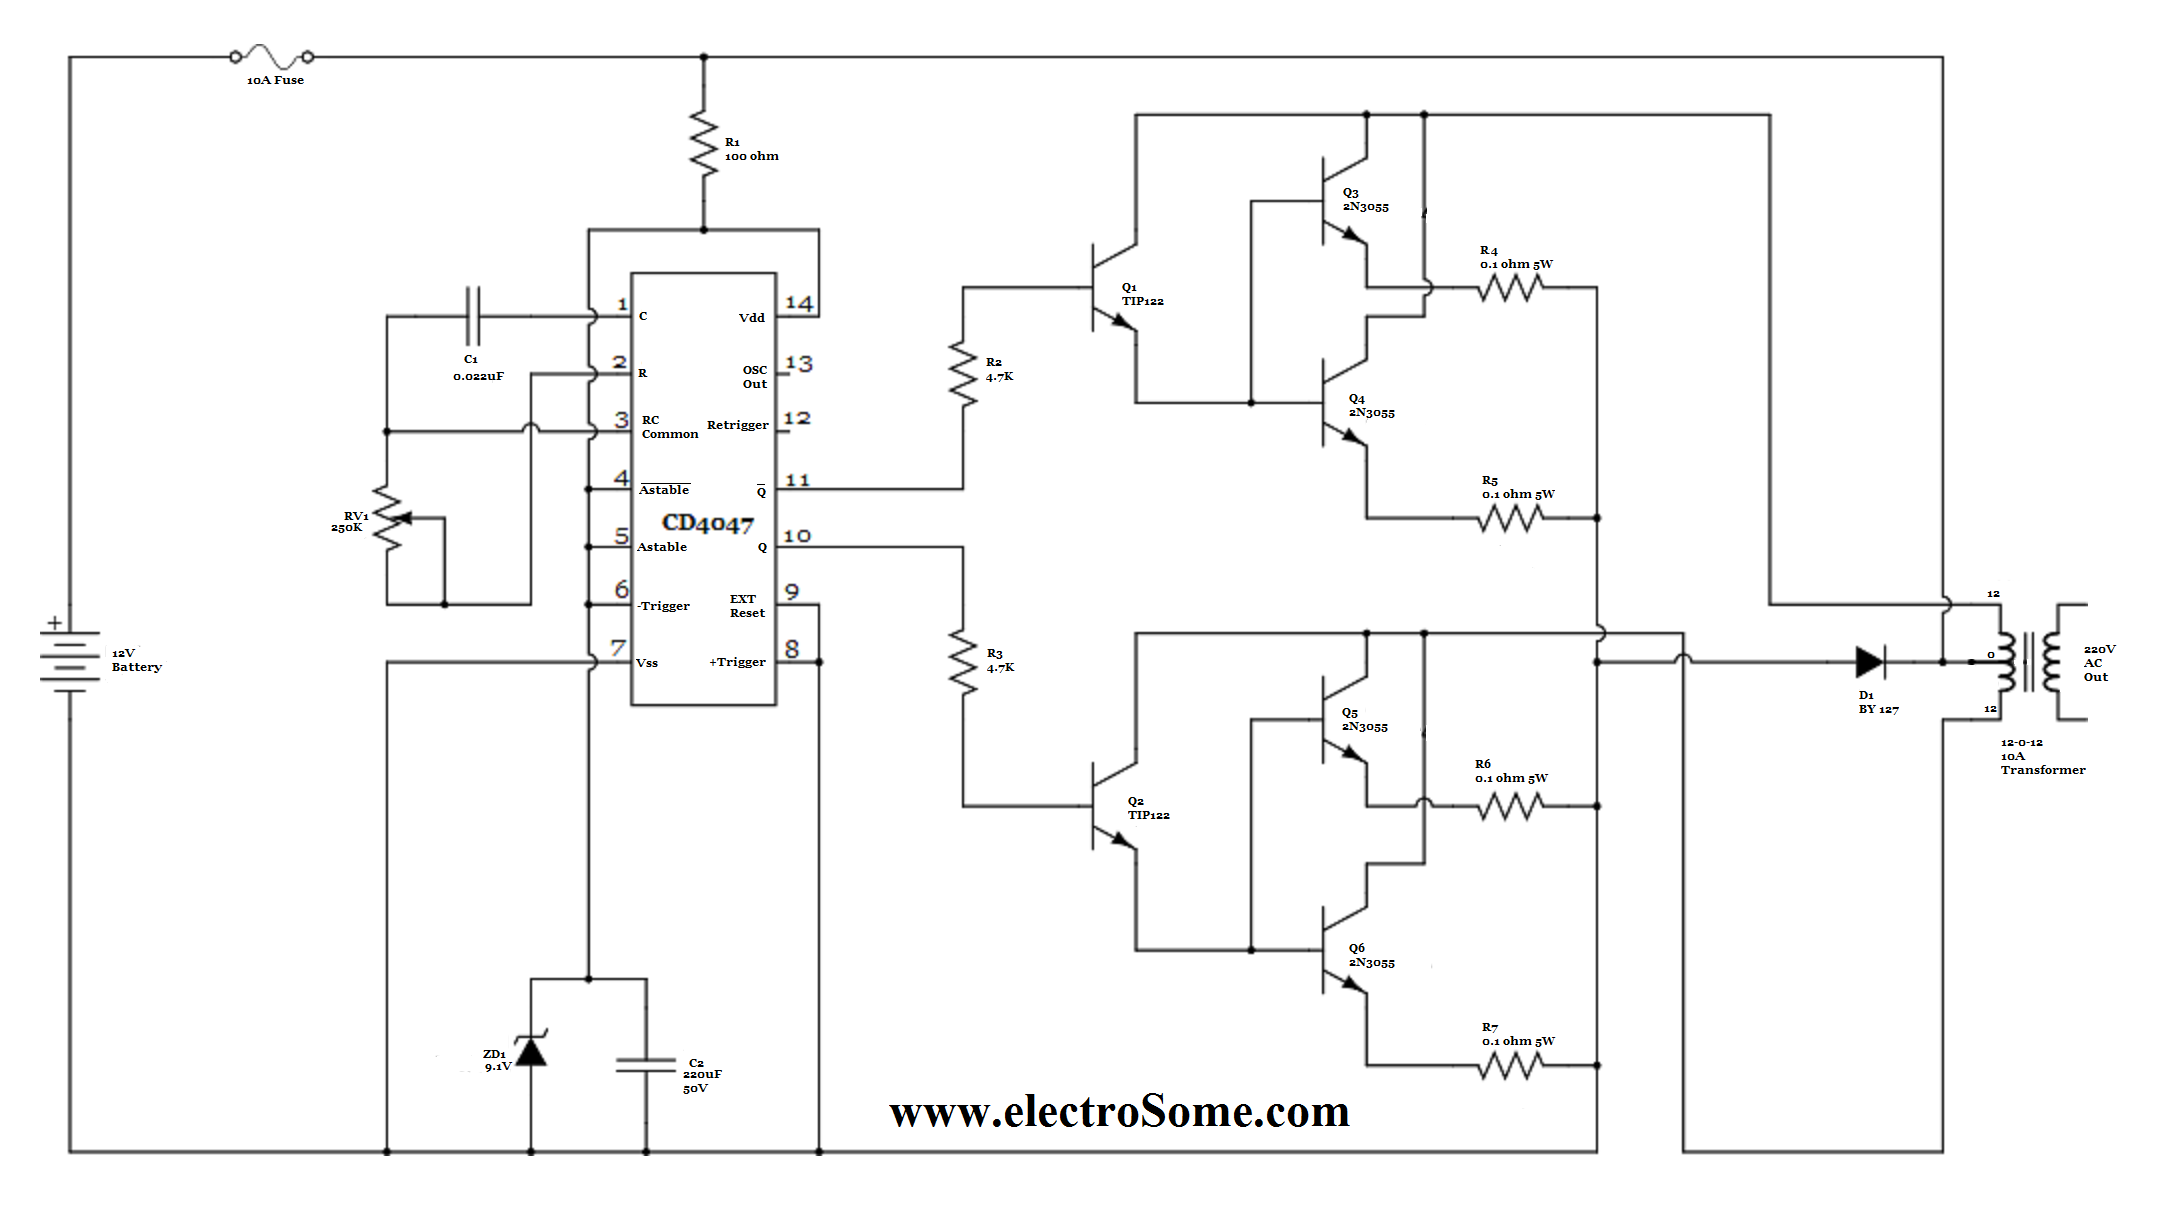 Simple Inverter Circuit using CD4047 low power square wave inverter circuit using cd4047 inverter circuit diagram at readyjetset.co